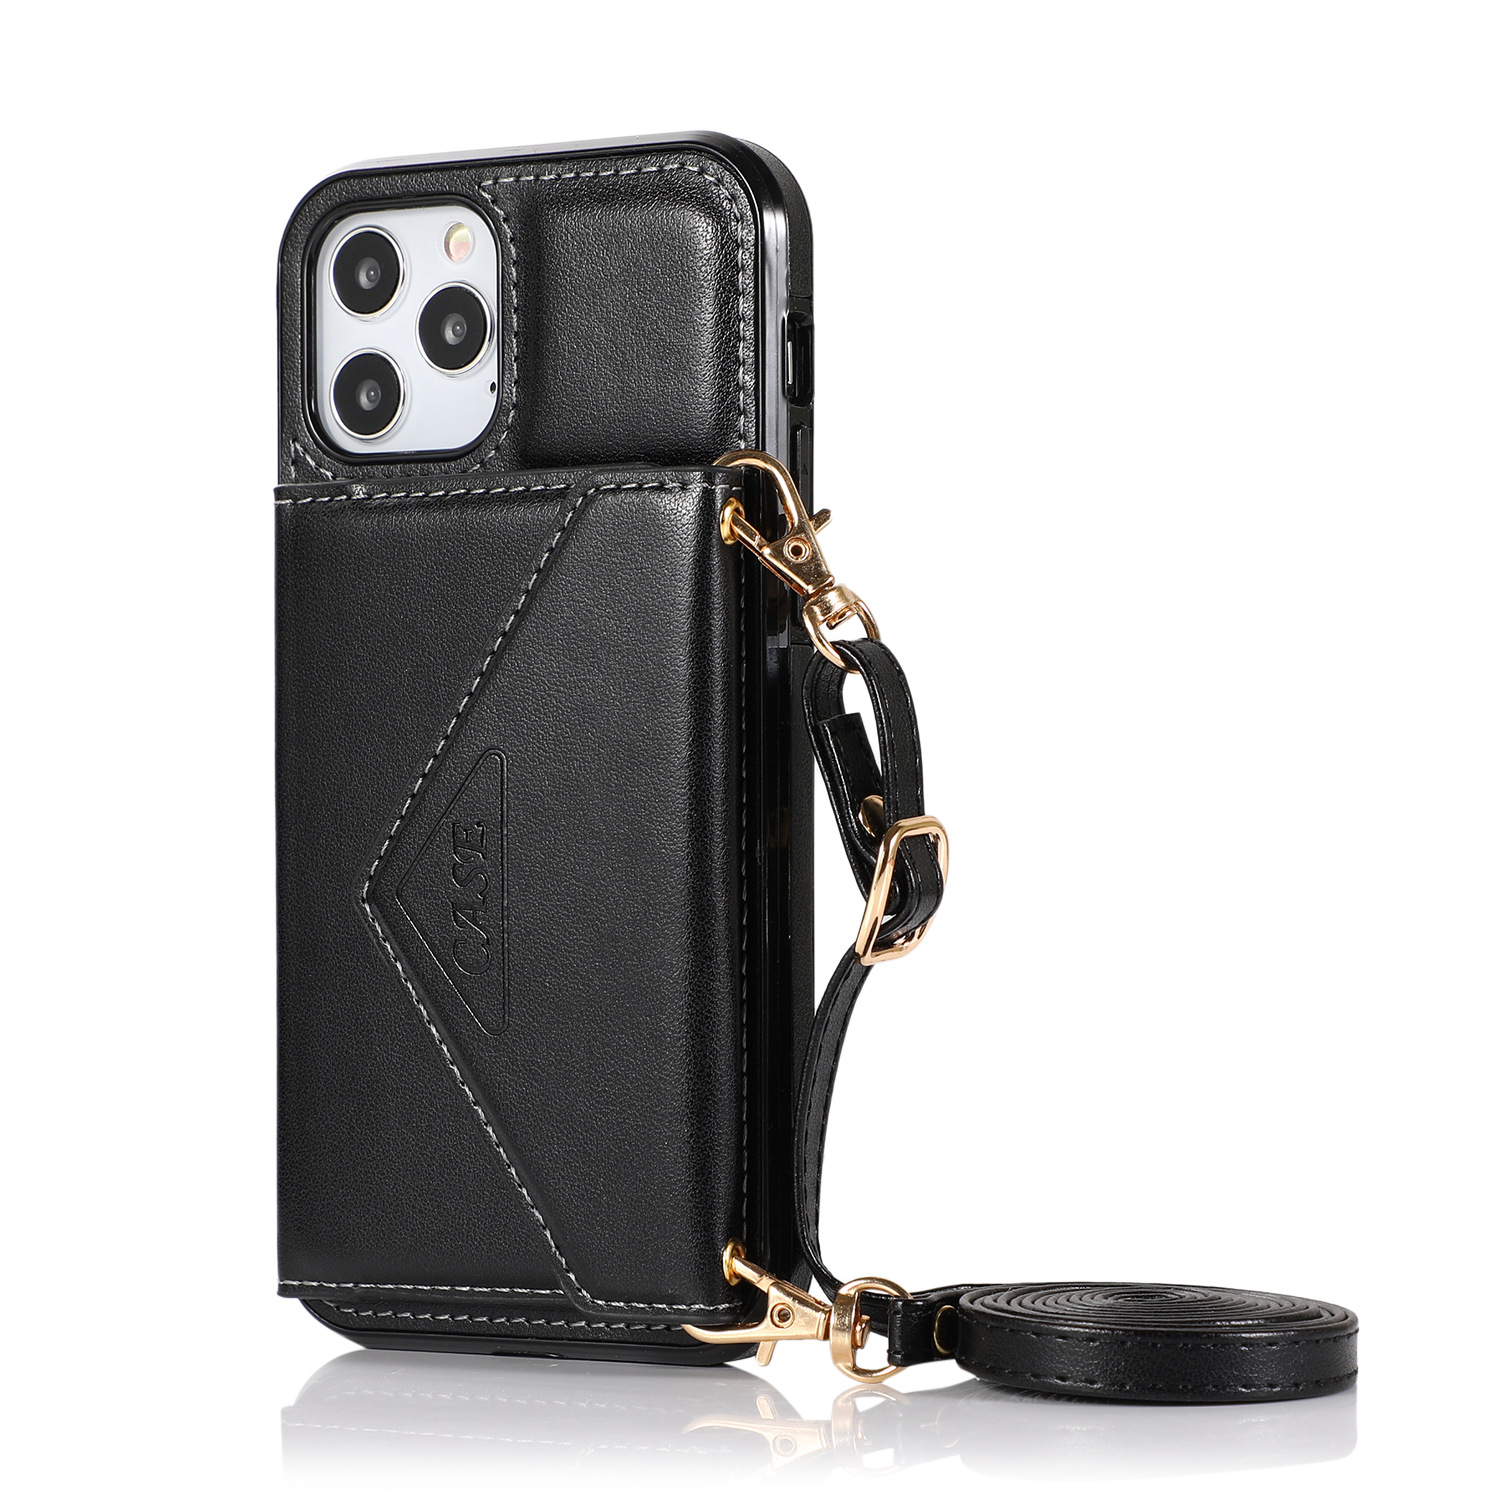 Mobile Phone Case Protective Case Cover For Iphone12/12 Pro Messenger Bag black